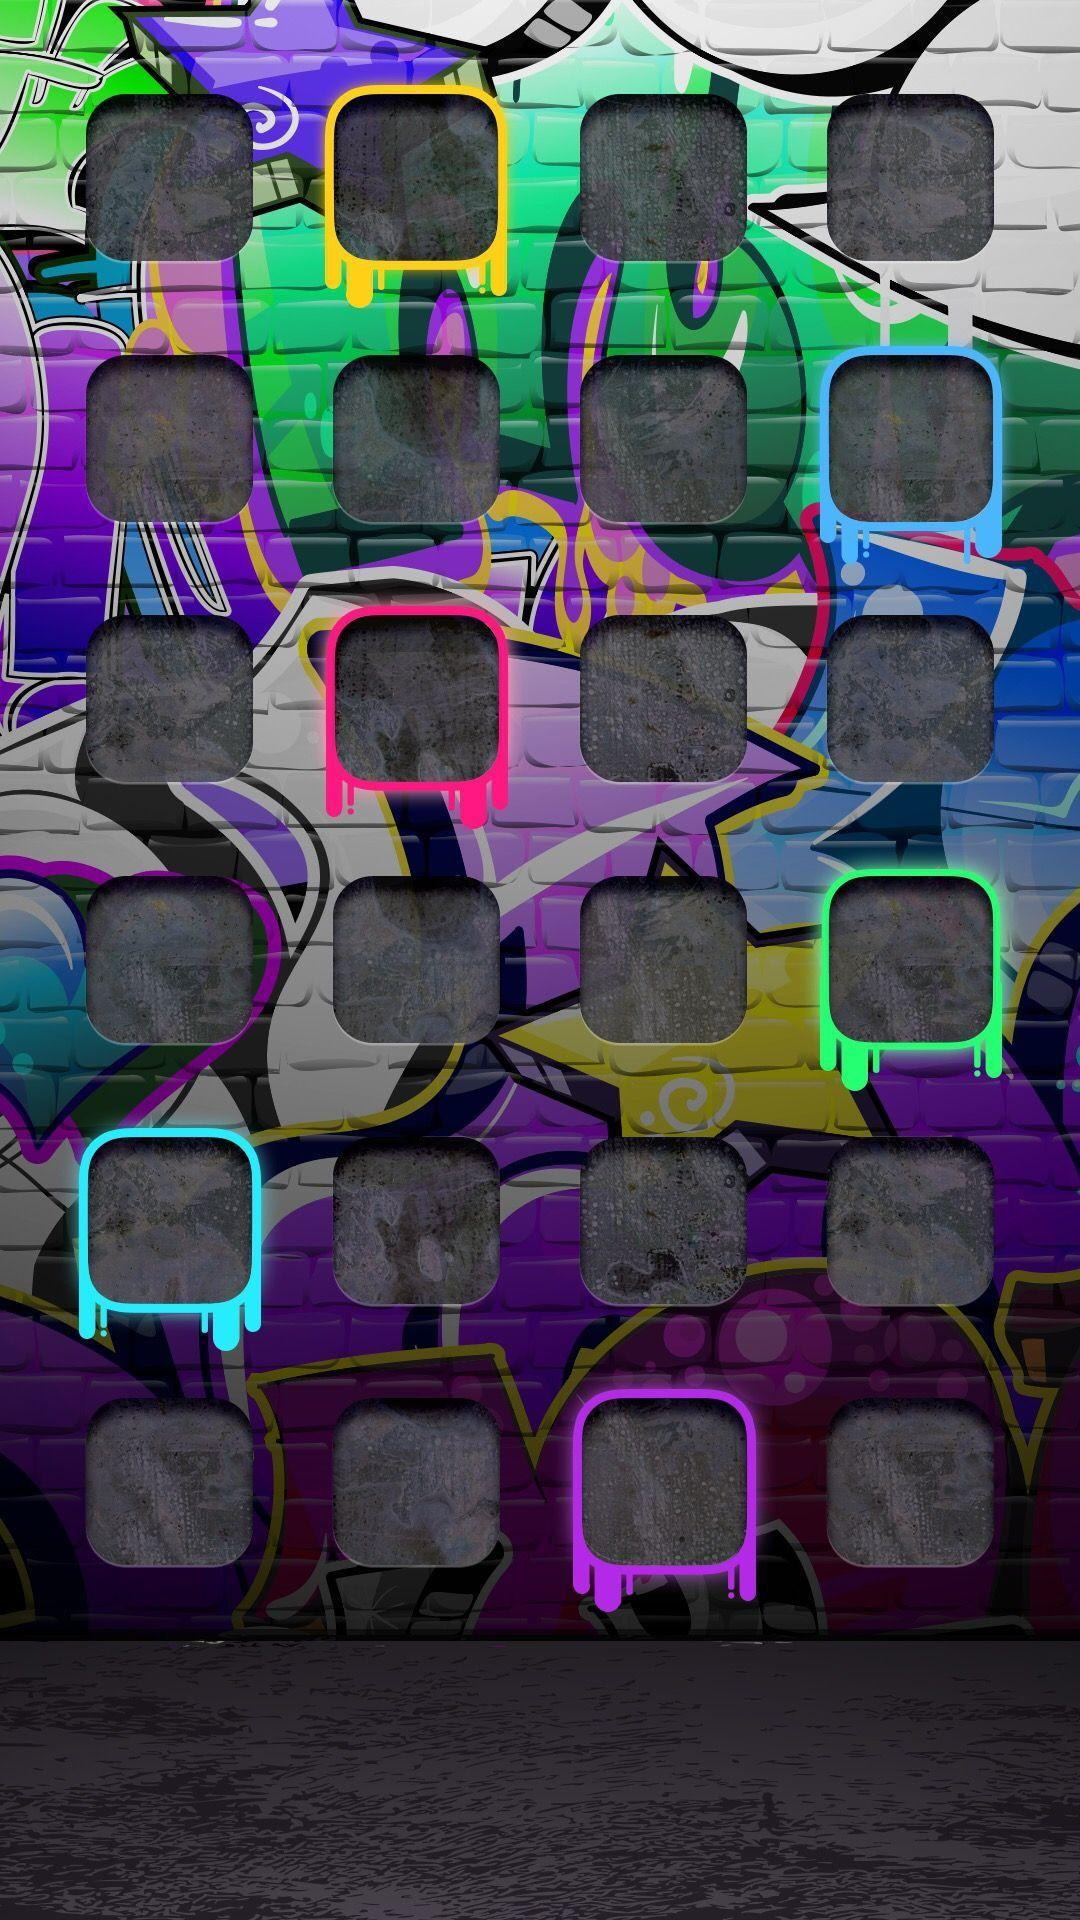 Why You Will Love Having Graffiti Wallpaper on Your iPhone